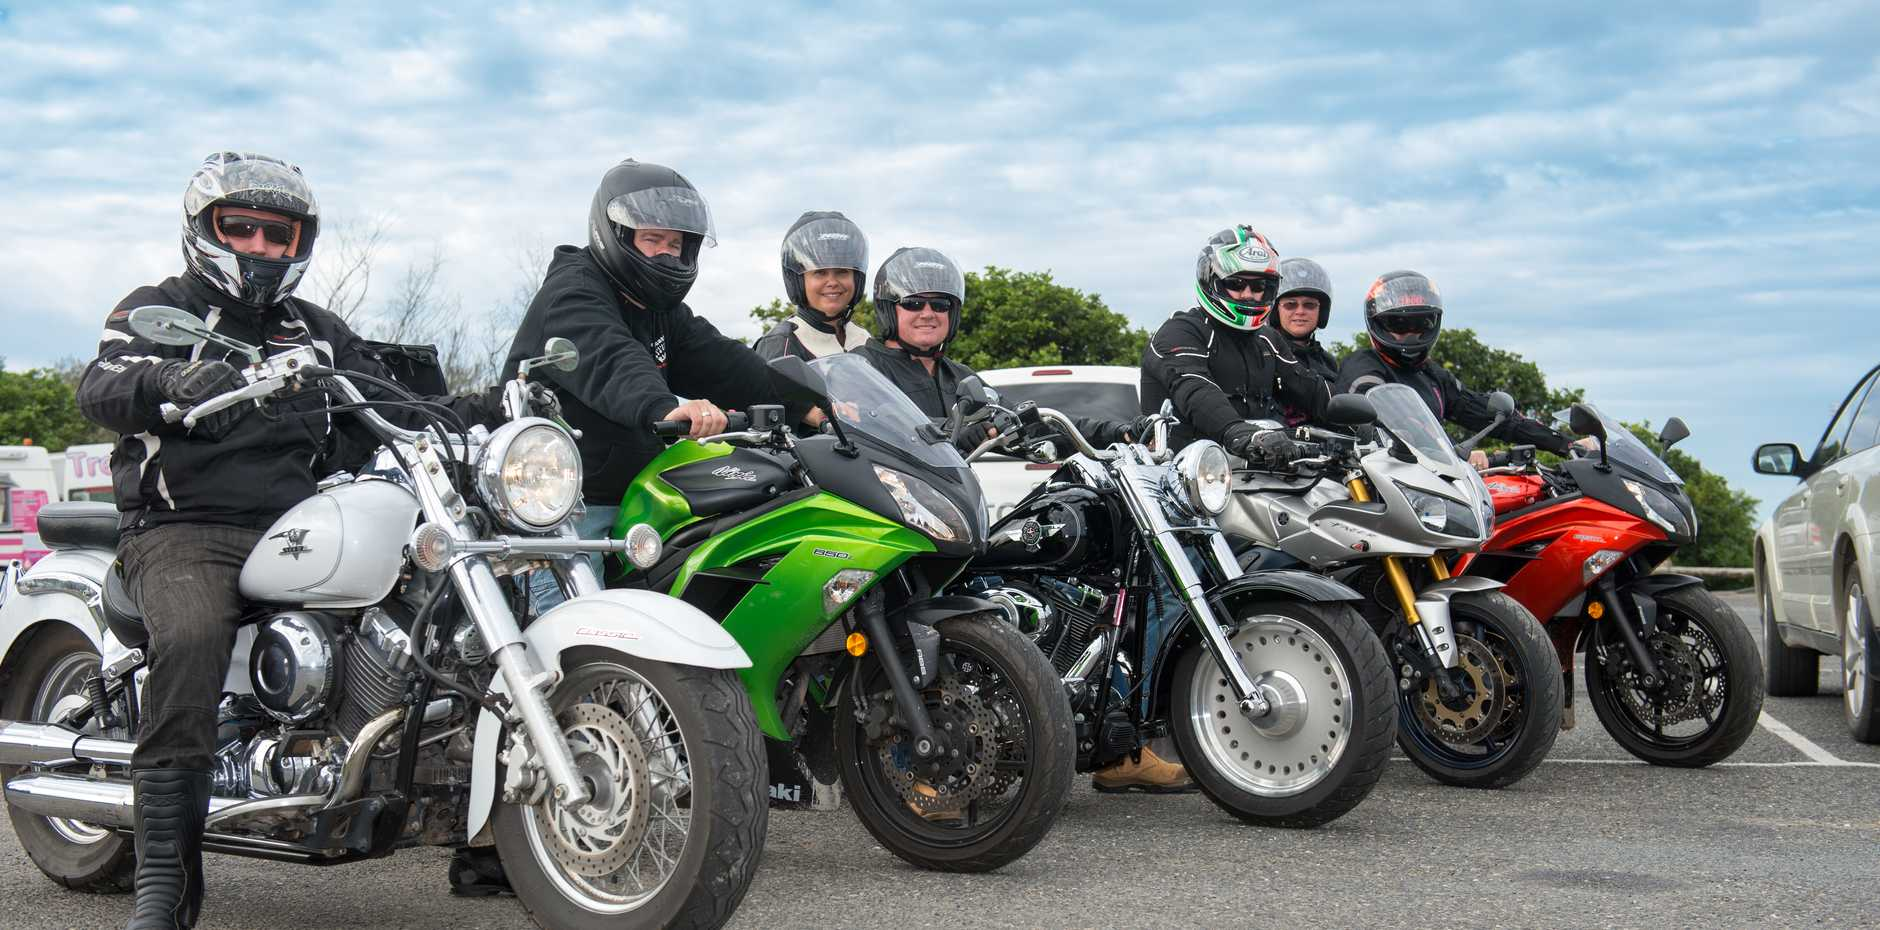 The Coastal Riders invite all motorcyclists to join the Annual Winter Charity Ride.